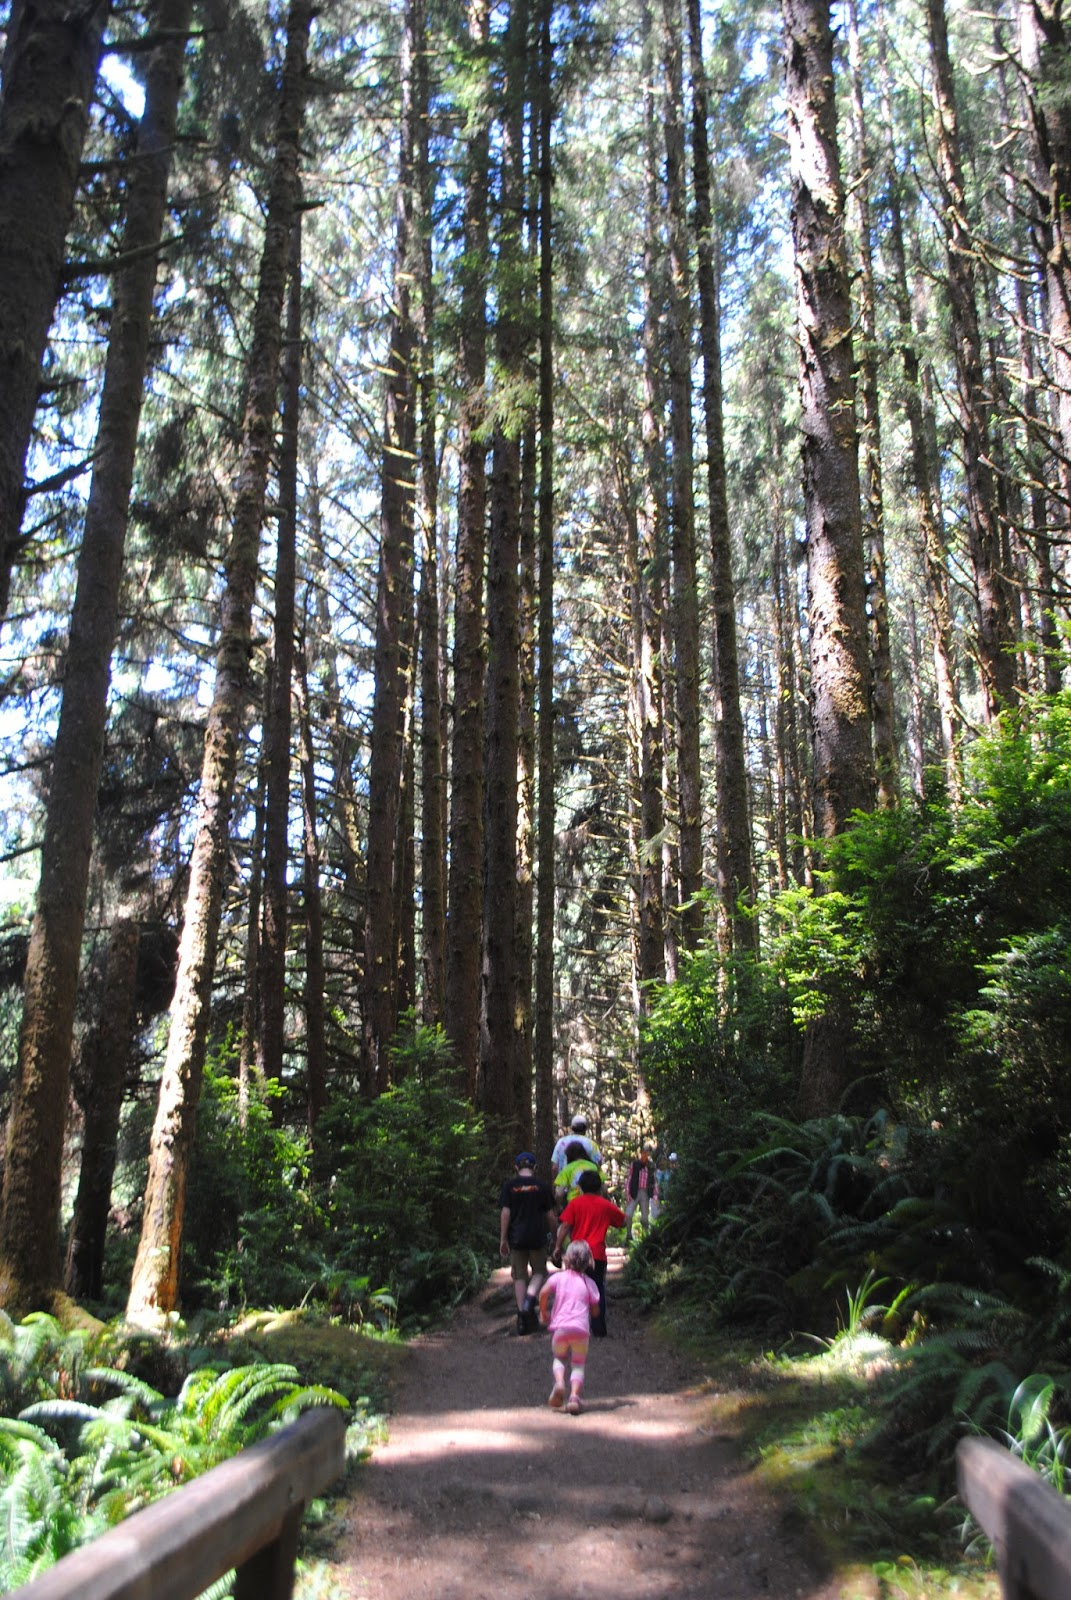 Gold Bluffs Beach - Orick, California - Del Norte County - Redwoods - Northern California - What to do in Southern Oregon - Camping - Kid-Friendly 22.jpg